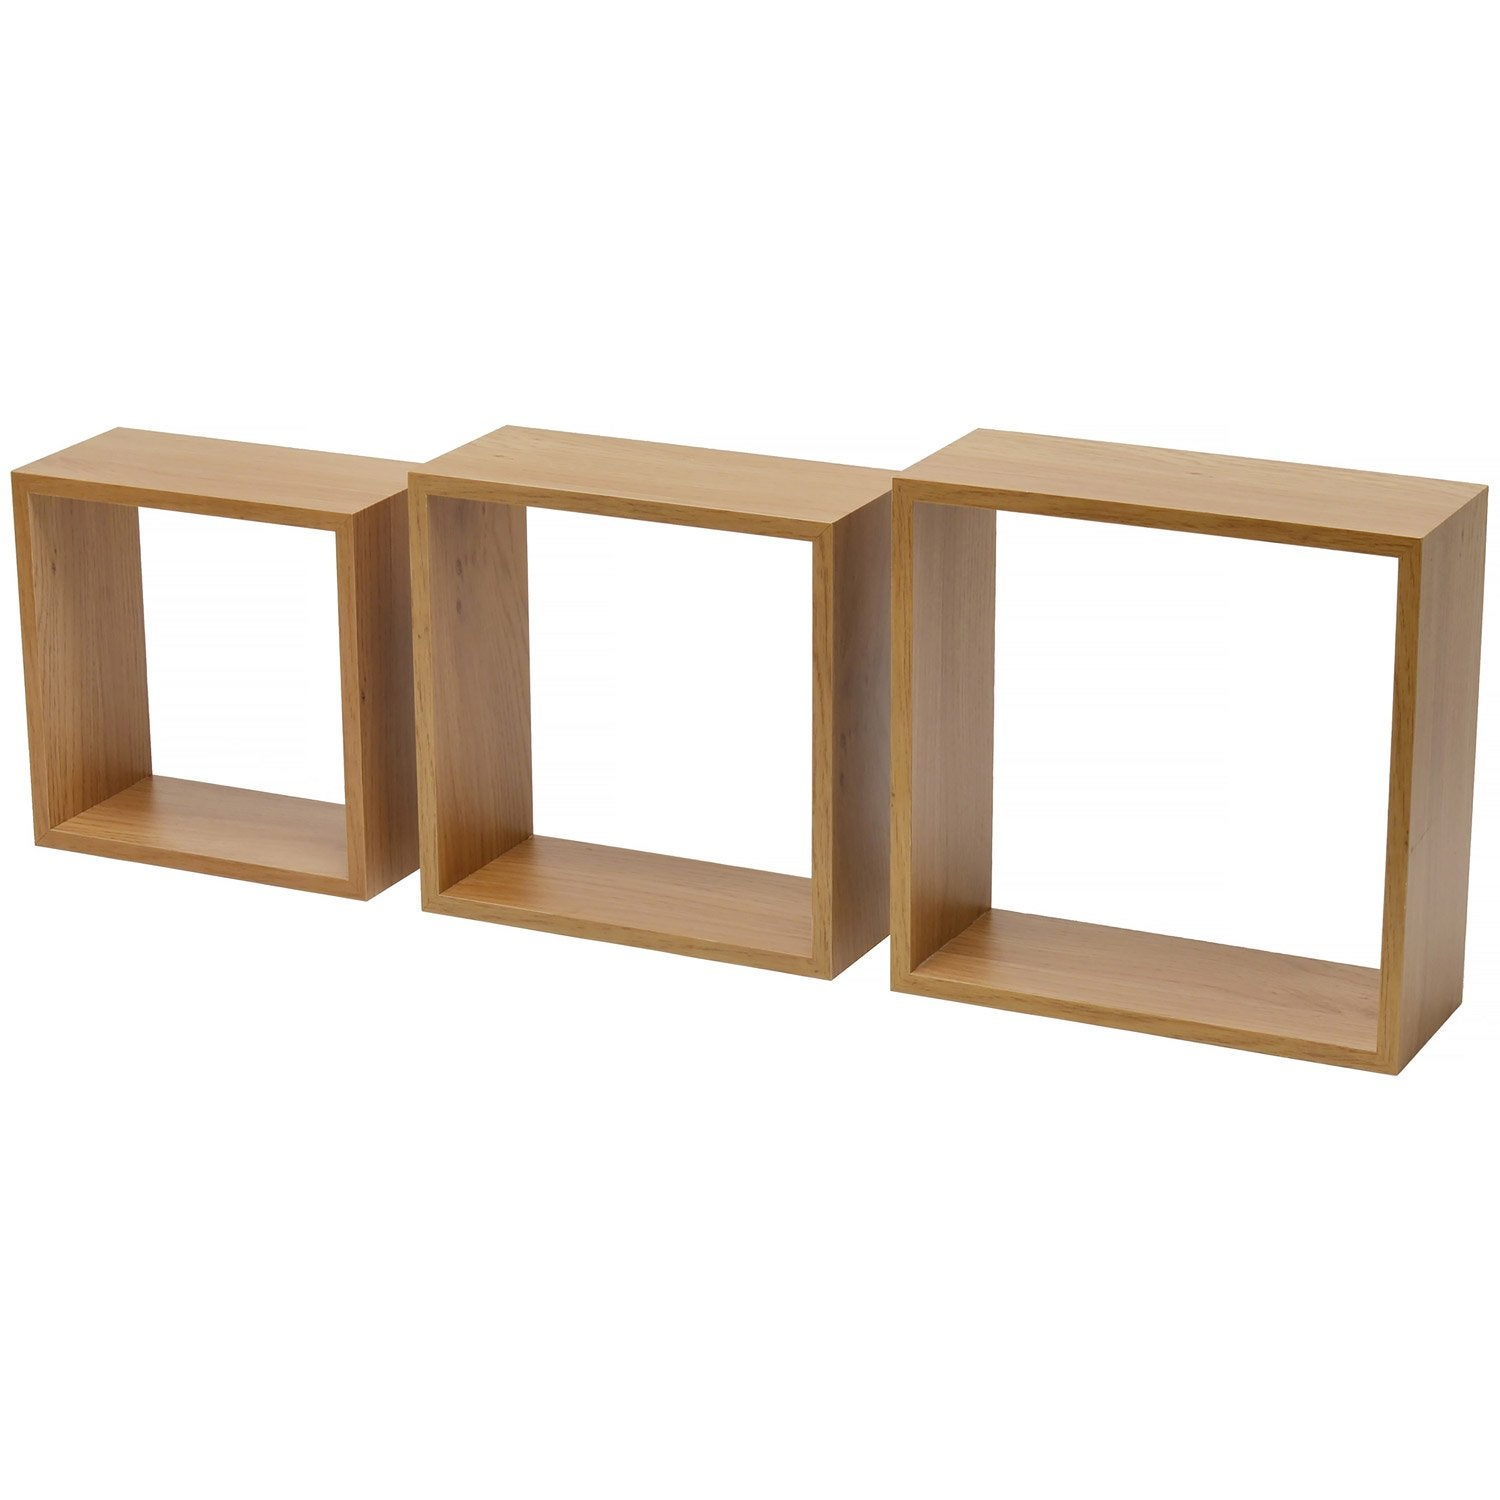 Etag re 3 cubes imitation ch ne naturel 12mm 27x27x10cm mm leroy merlin - Hout prieel leroy merlin ...